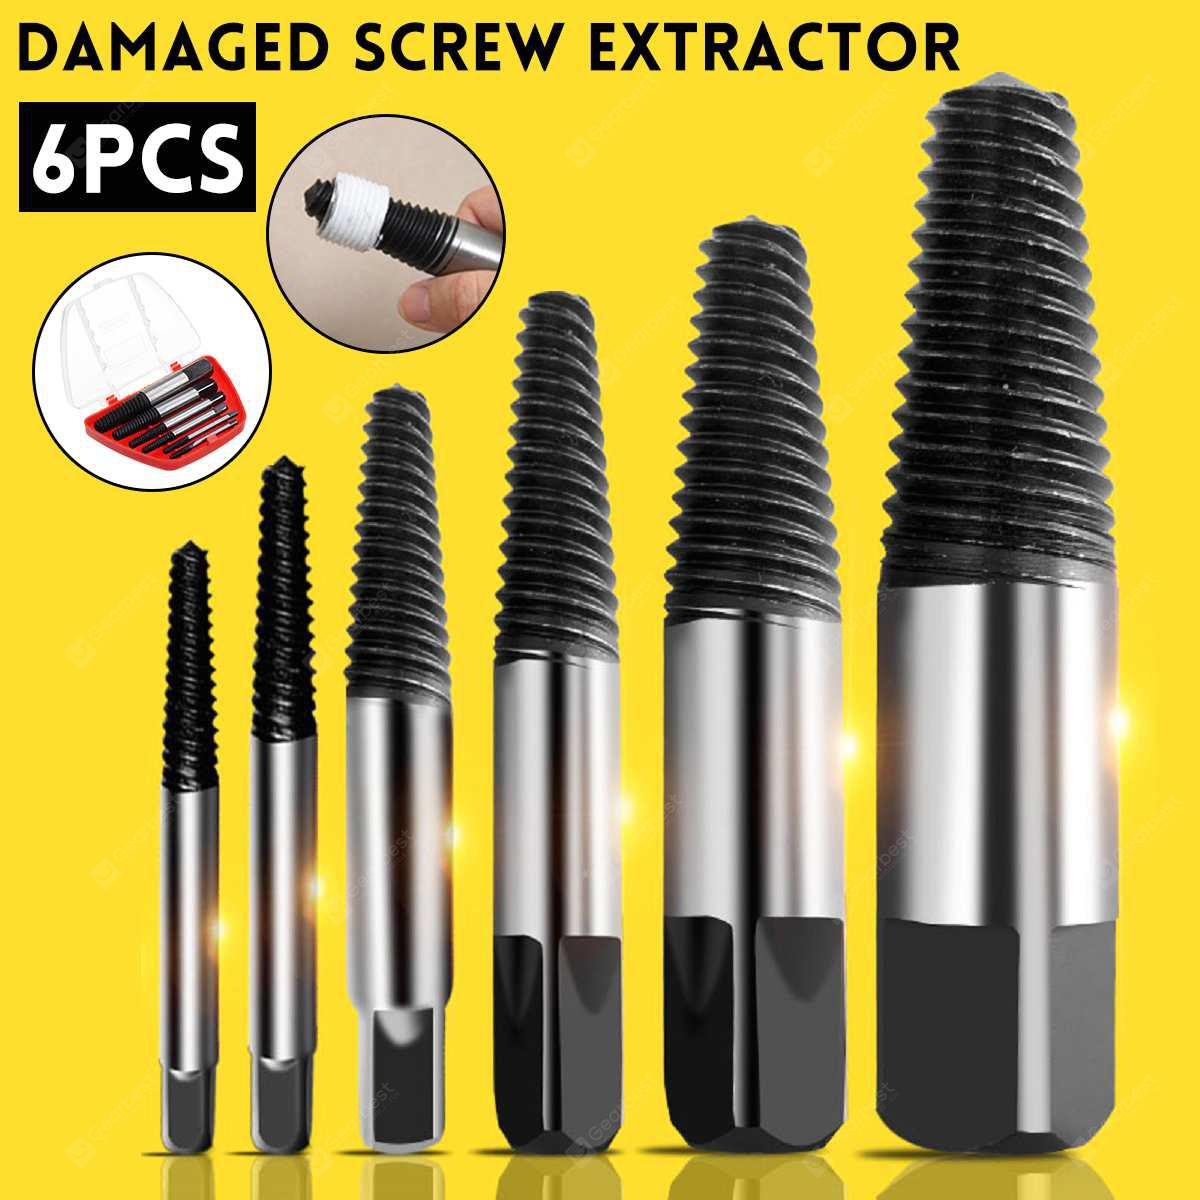 6pcs Set Damaged Screw Extractor Speed Out Drill Bits Tool Broken Bolt Remover